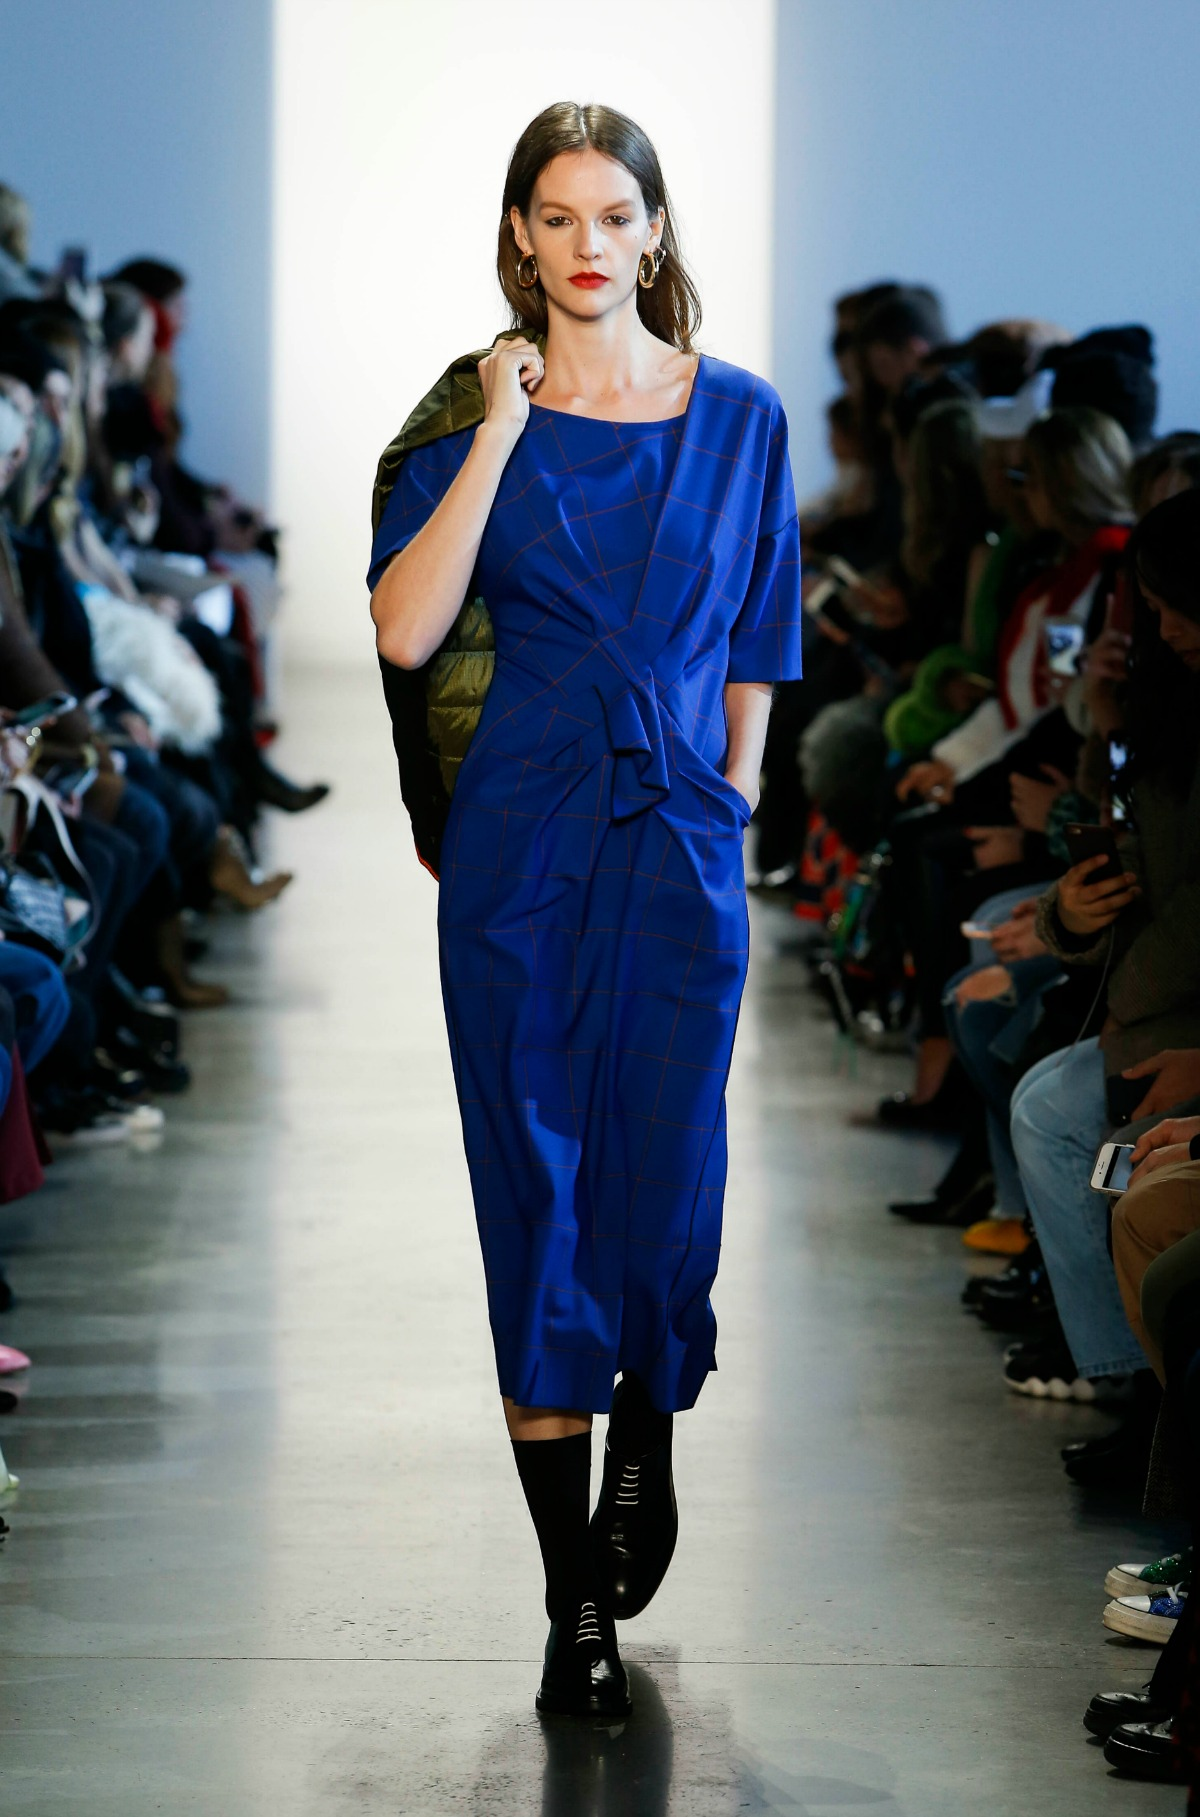 Colovos Fall 2018 Runway at New York Fashion Week I Blue Wool Dress with Front-Tie #NYFW #WinterFashion